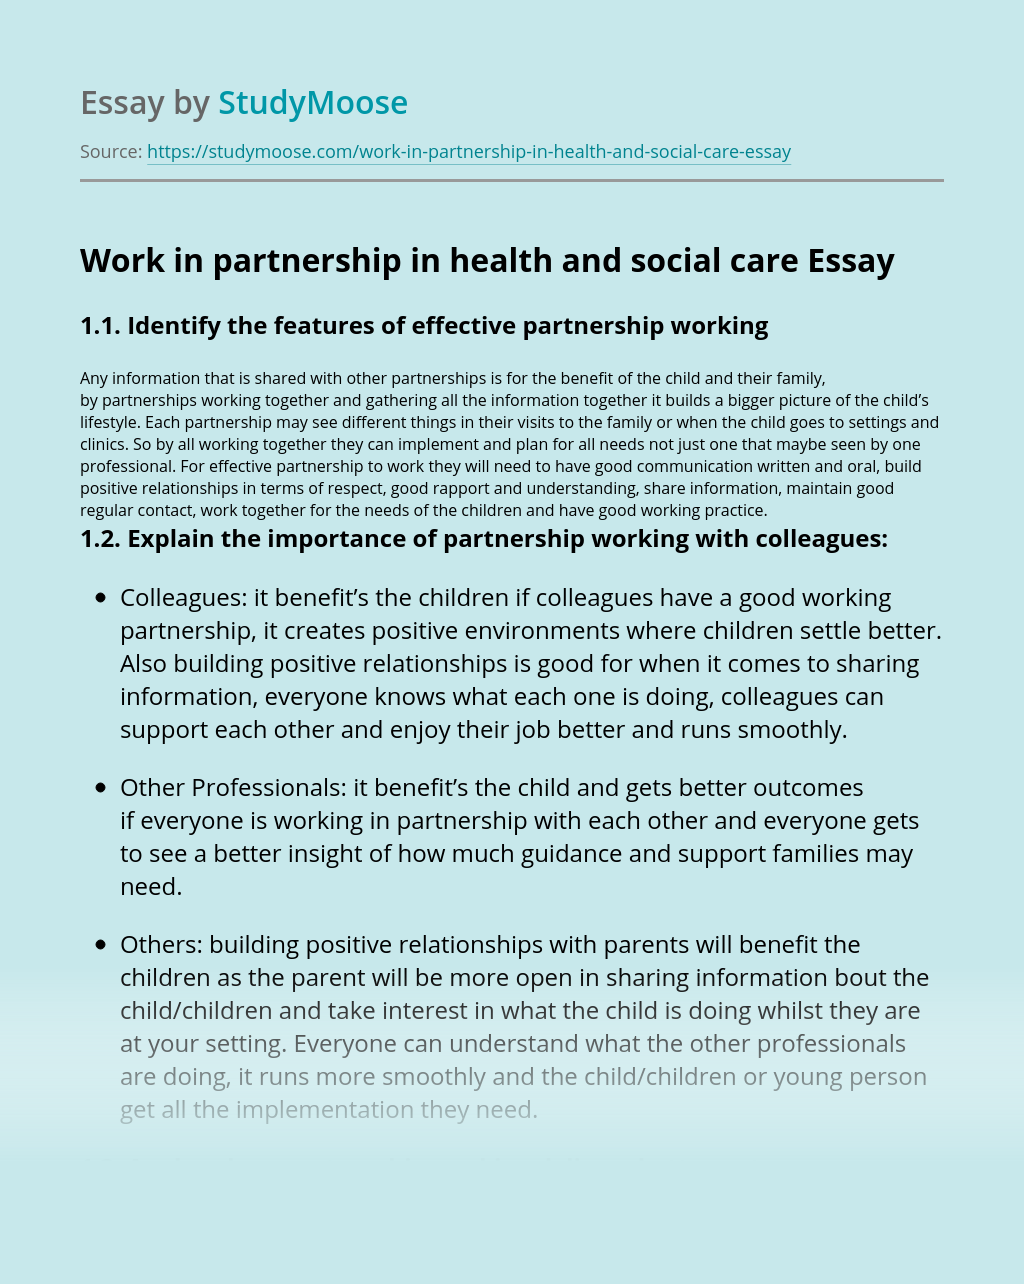 Work in partnership in health and social care